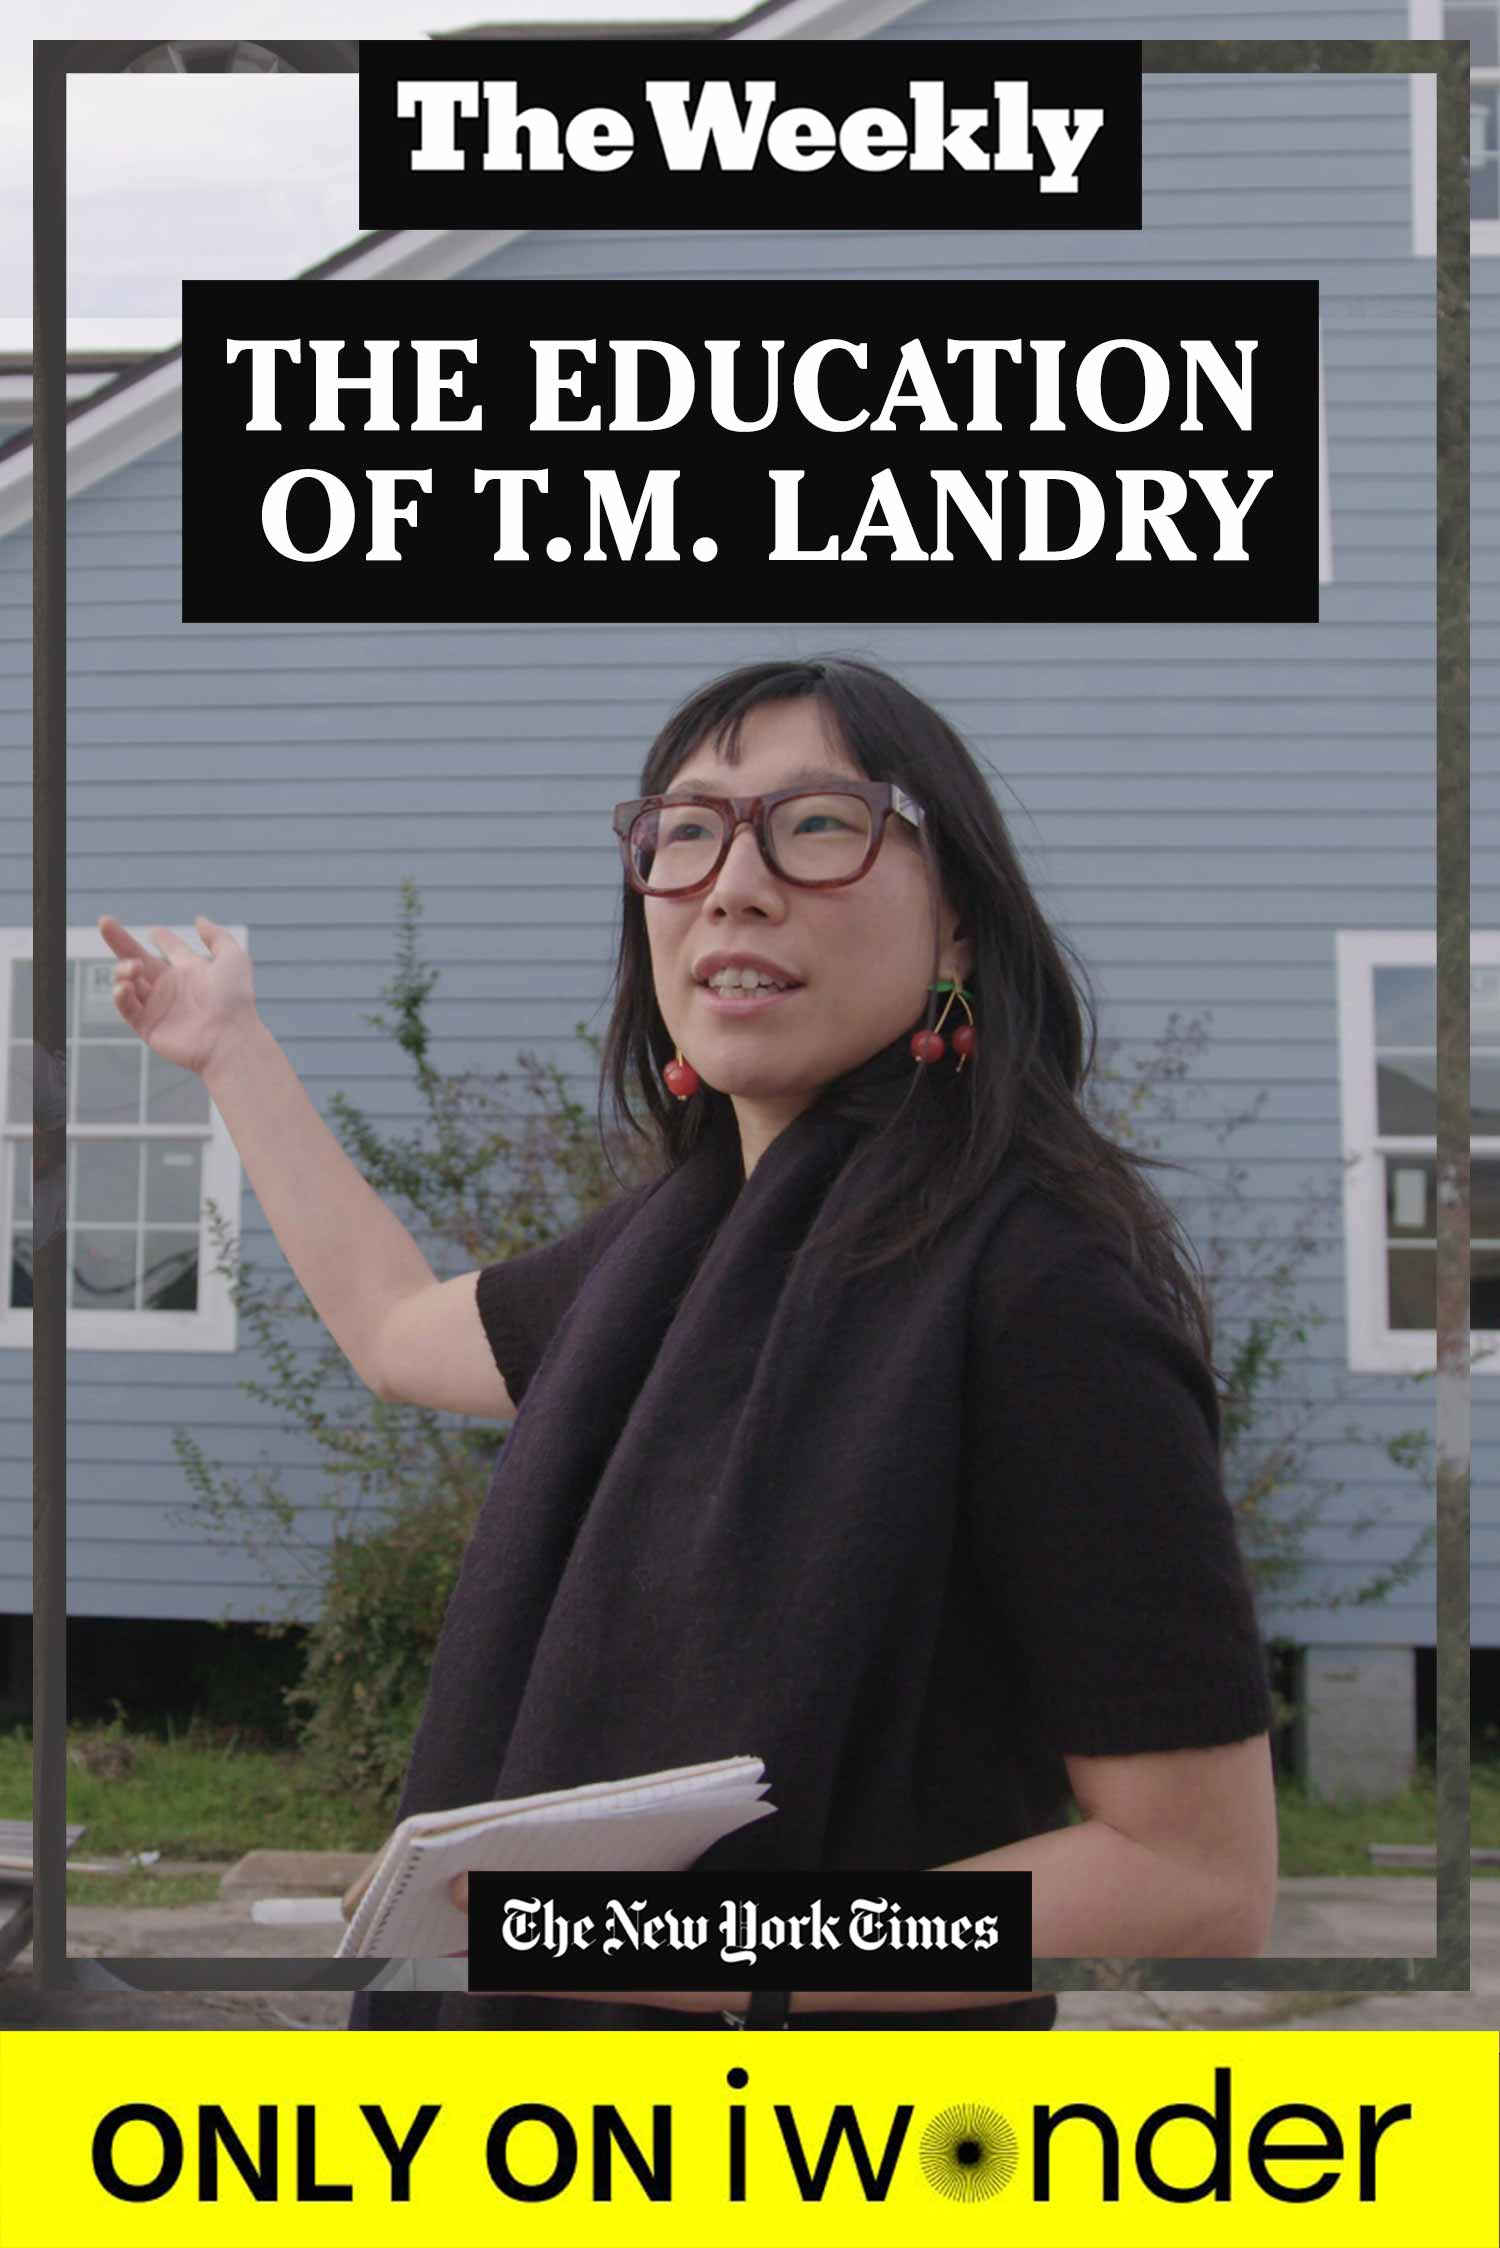 The Weekly: The Education of T.M. Landry